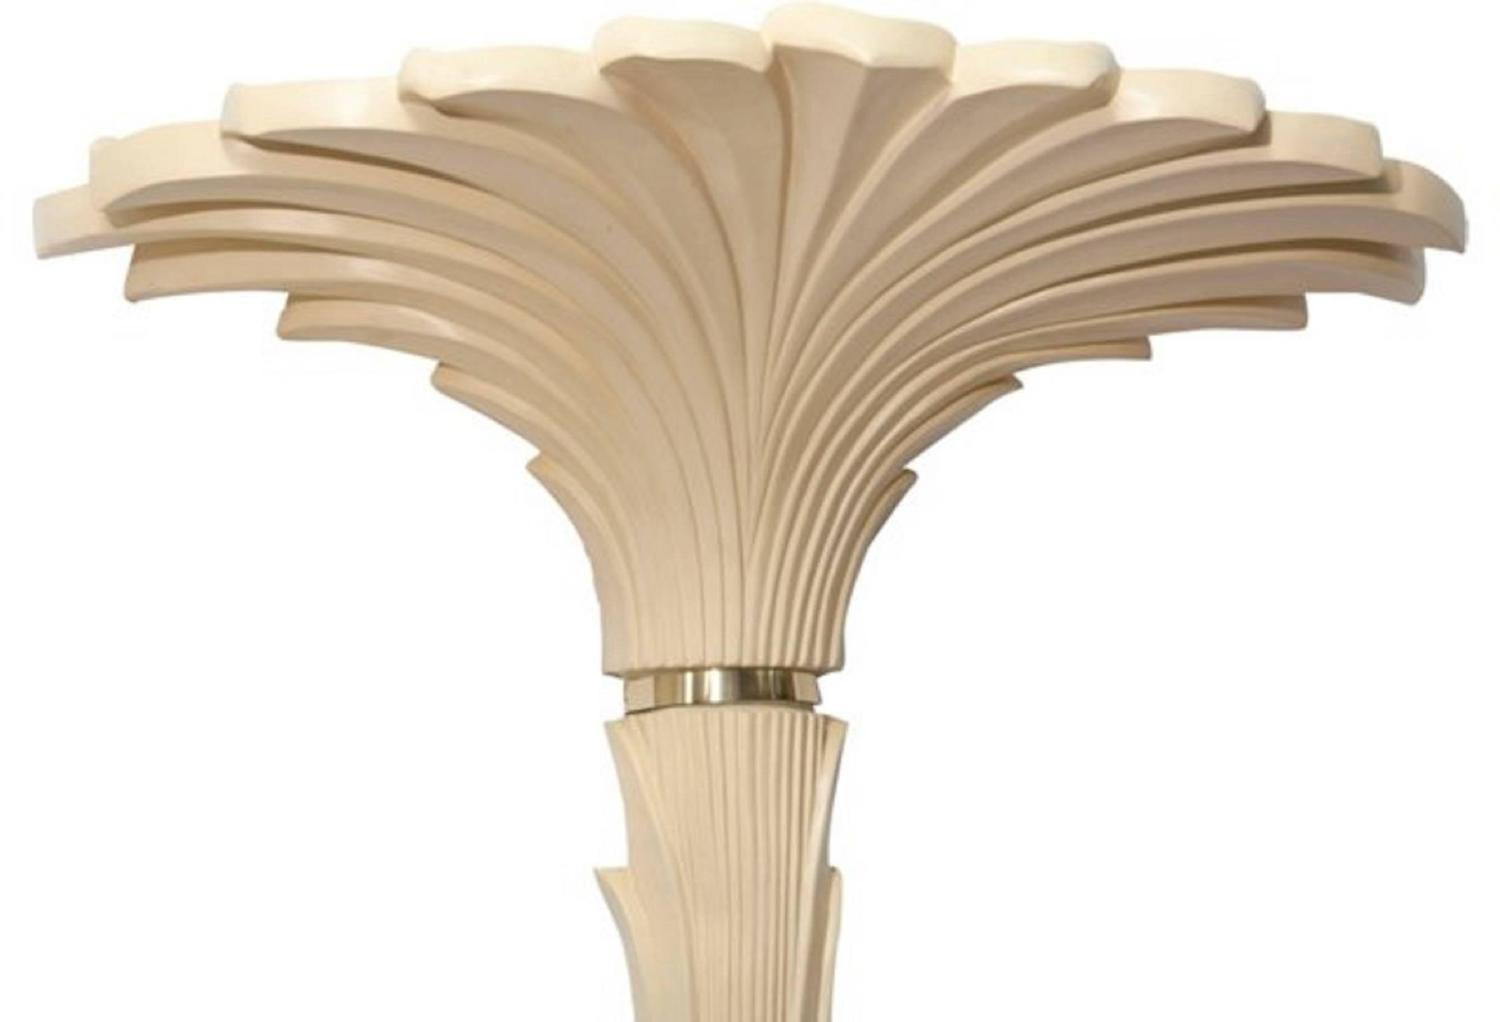 Wall Torchiere Lamps : Pair of Torchiere Roche Style Palm Tree Floor and Wall Lamps by Merle Edelman For Sale at 1stdibs